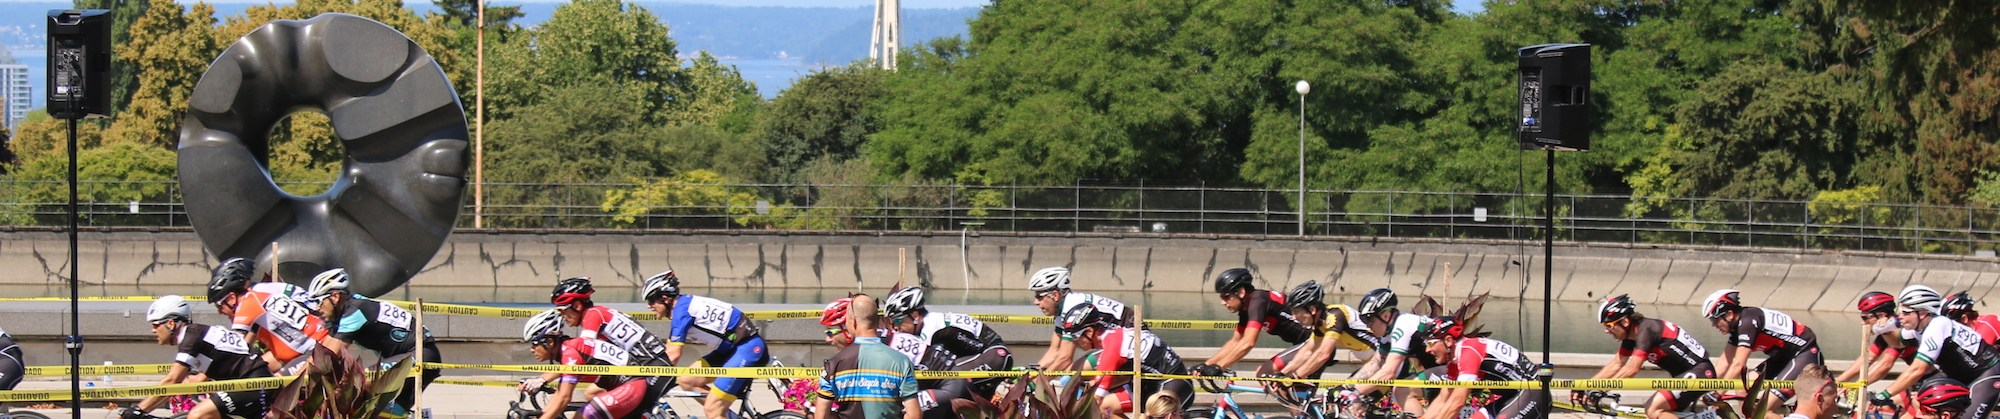 Taco Time Volunteer Park Criterium – Taco Time NW Cycling Team